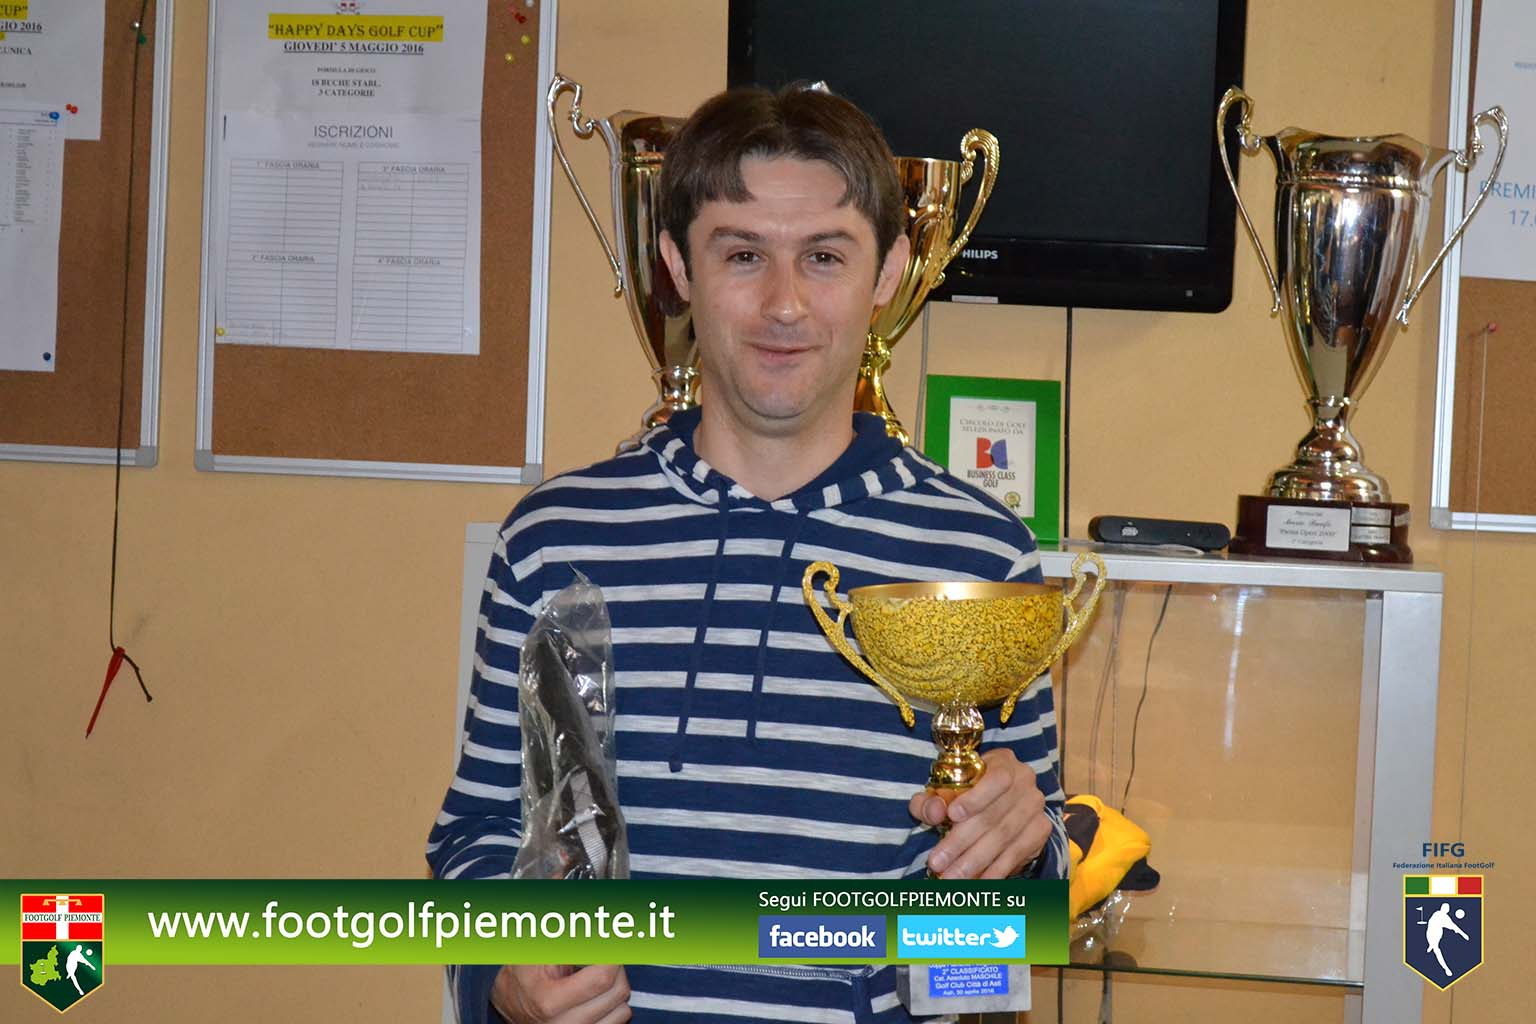 FOTO 9 Regions' Cup Footgolf Piemonte 2016 Golf Città di Asti (At) 30apr16-131